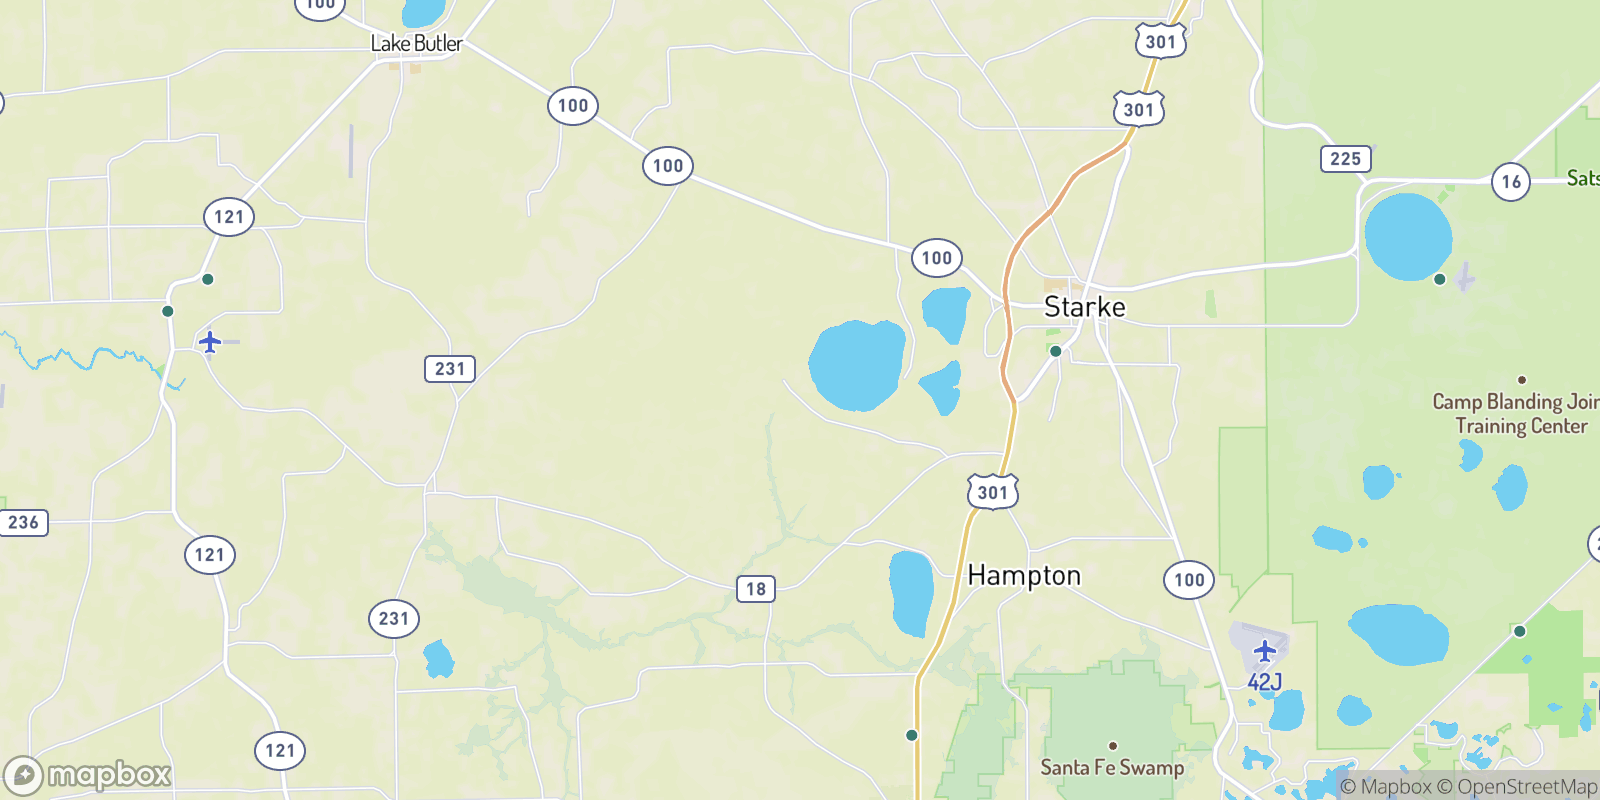 The best camping near Sampson, Florida